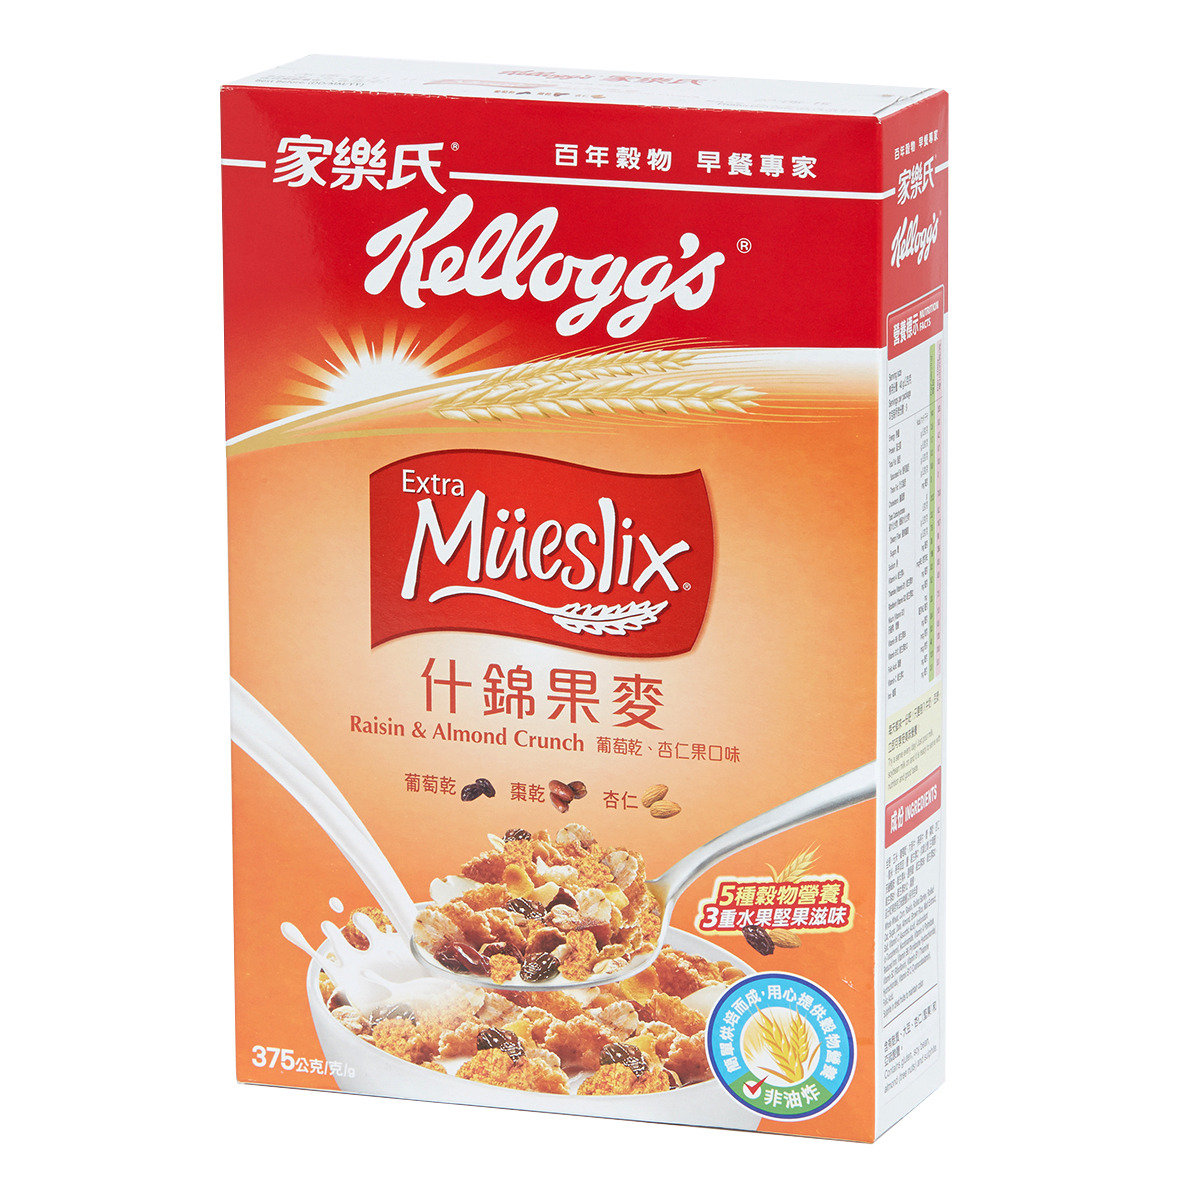 Coco Pops 400g Free Loops 170g Daftar Harga Terbaru 330g Kl33000 8852756304503 Cereals For Adult Source Extra Mueslix Raisin Almond Crunch